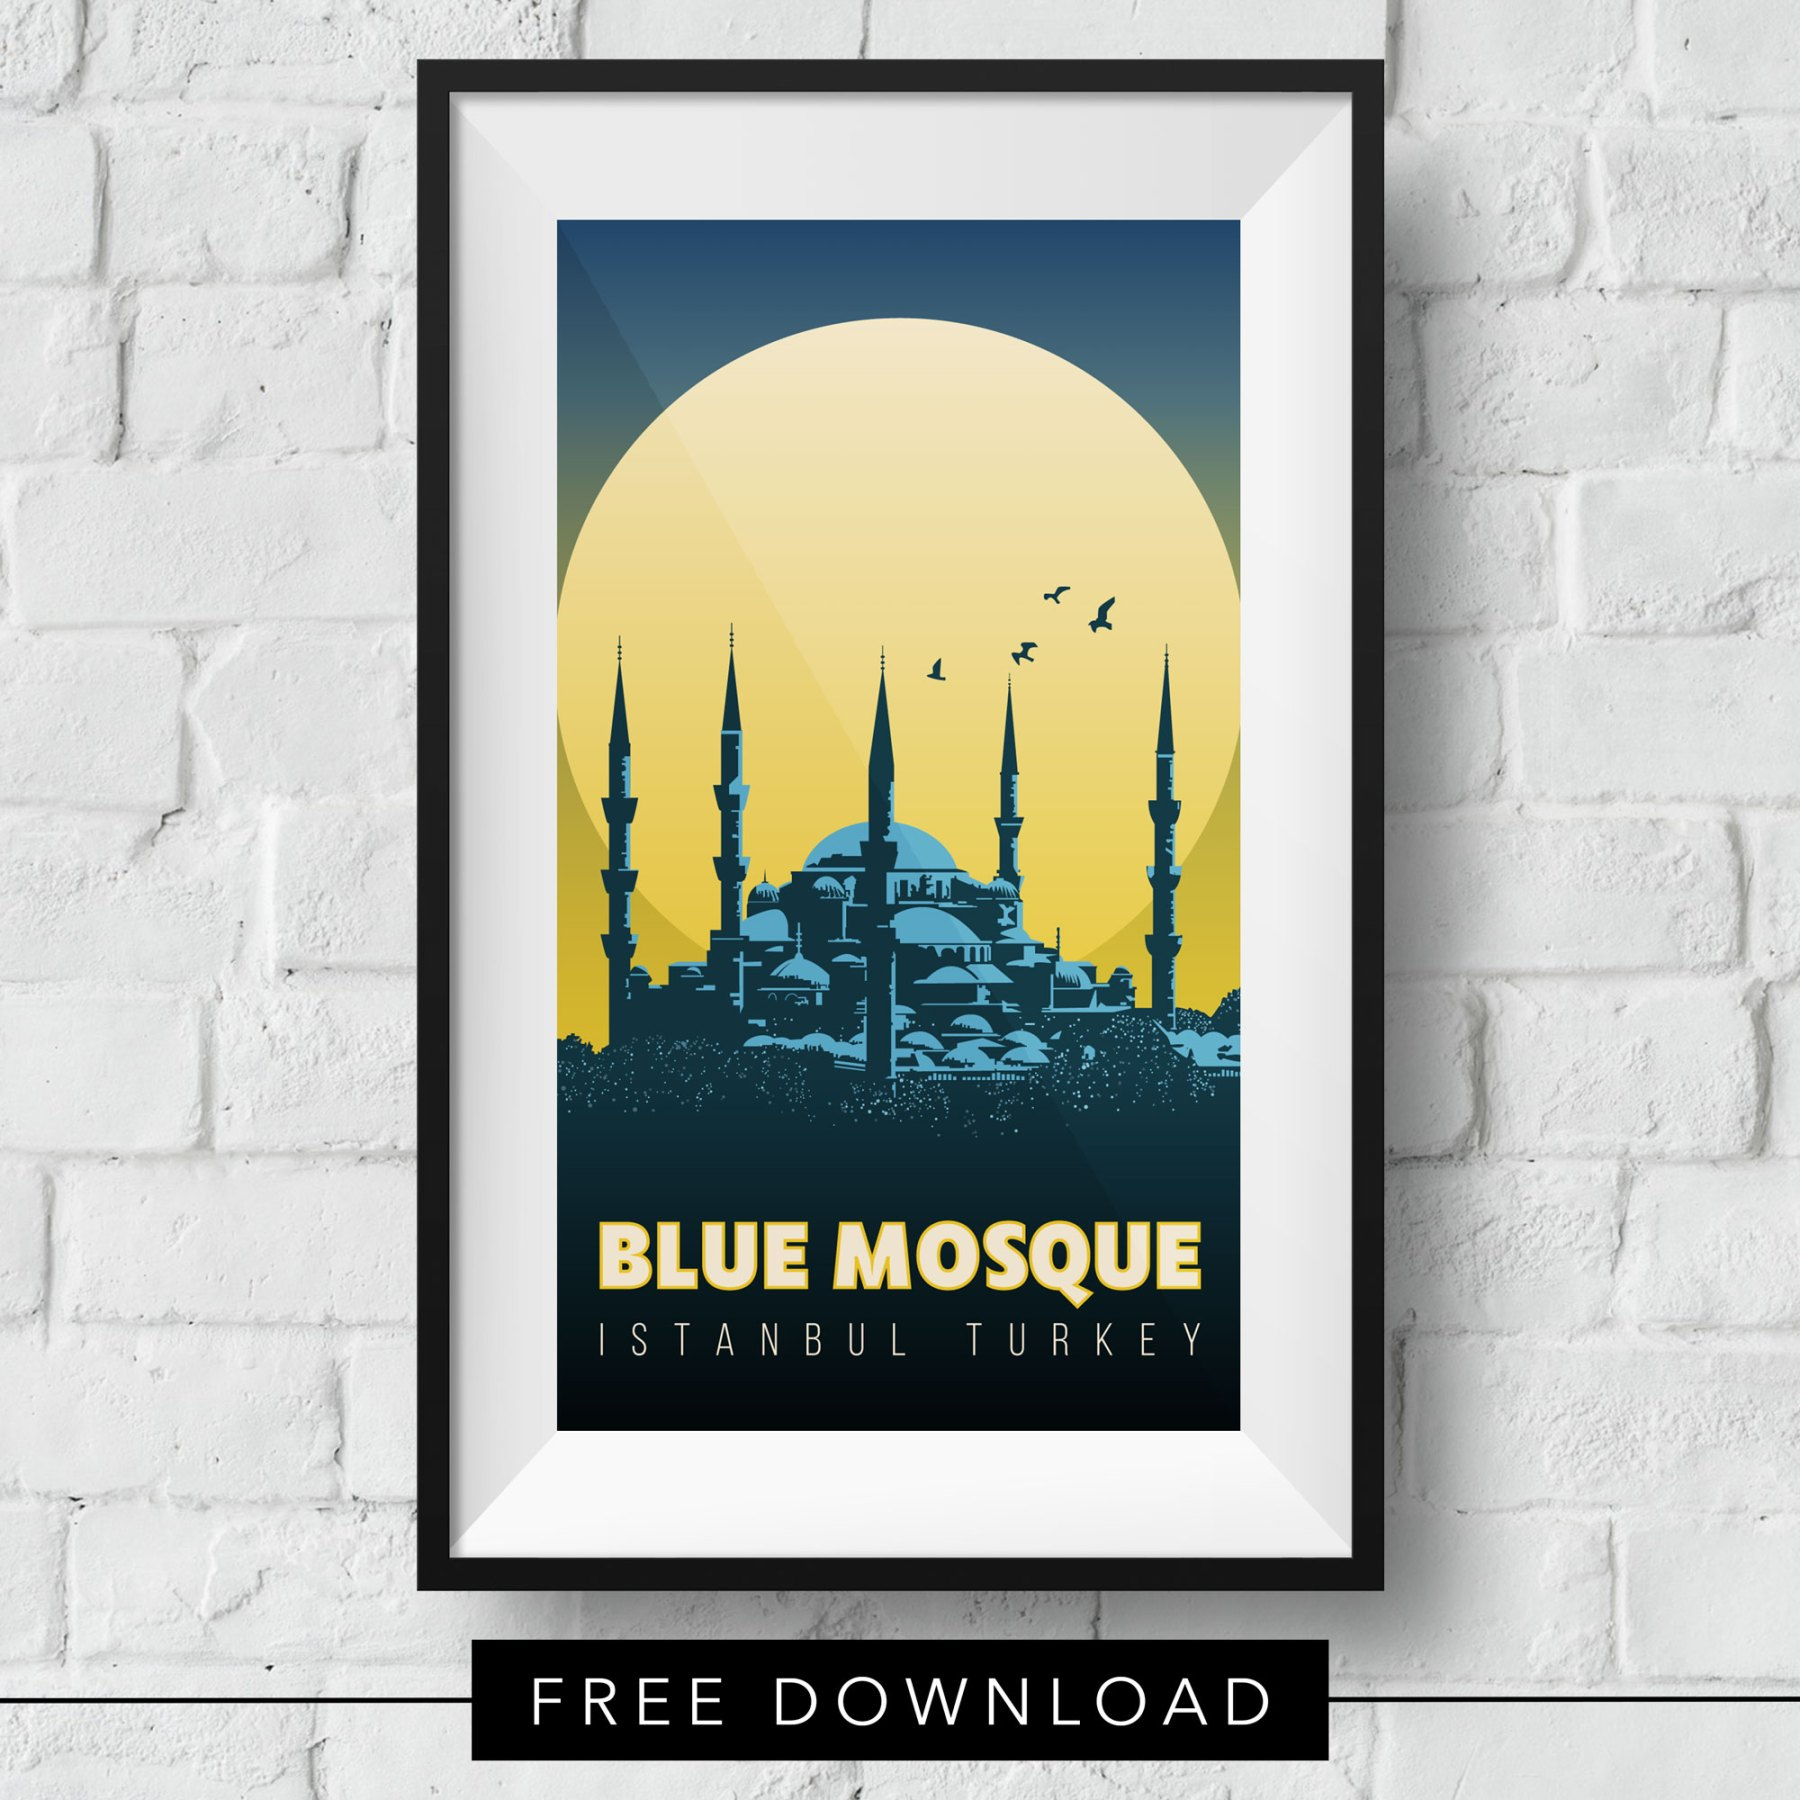 blue-mosque-free-download